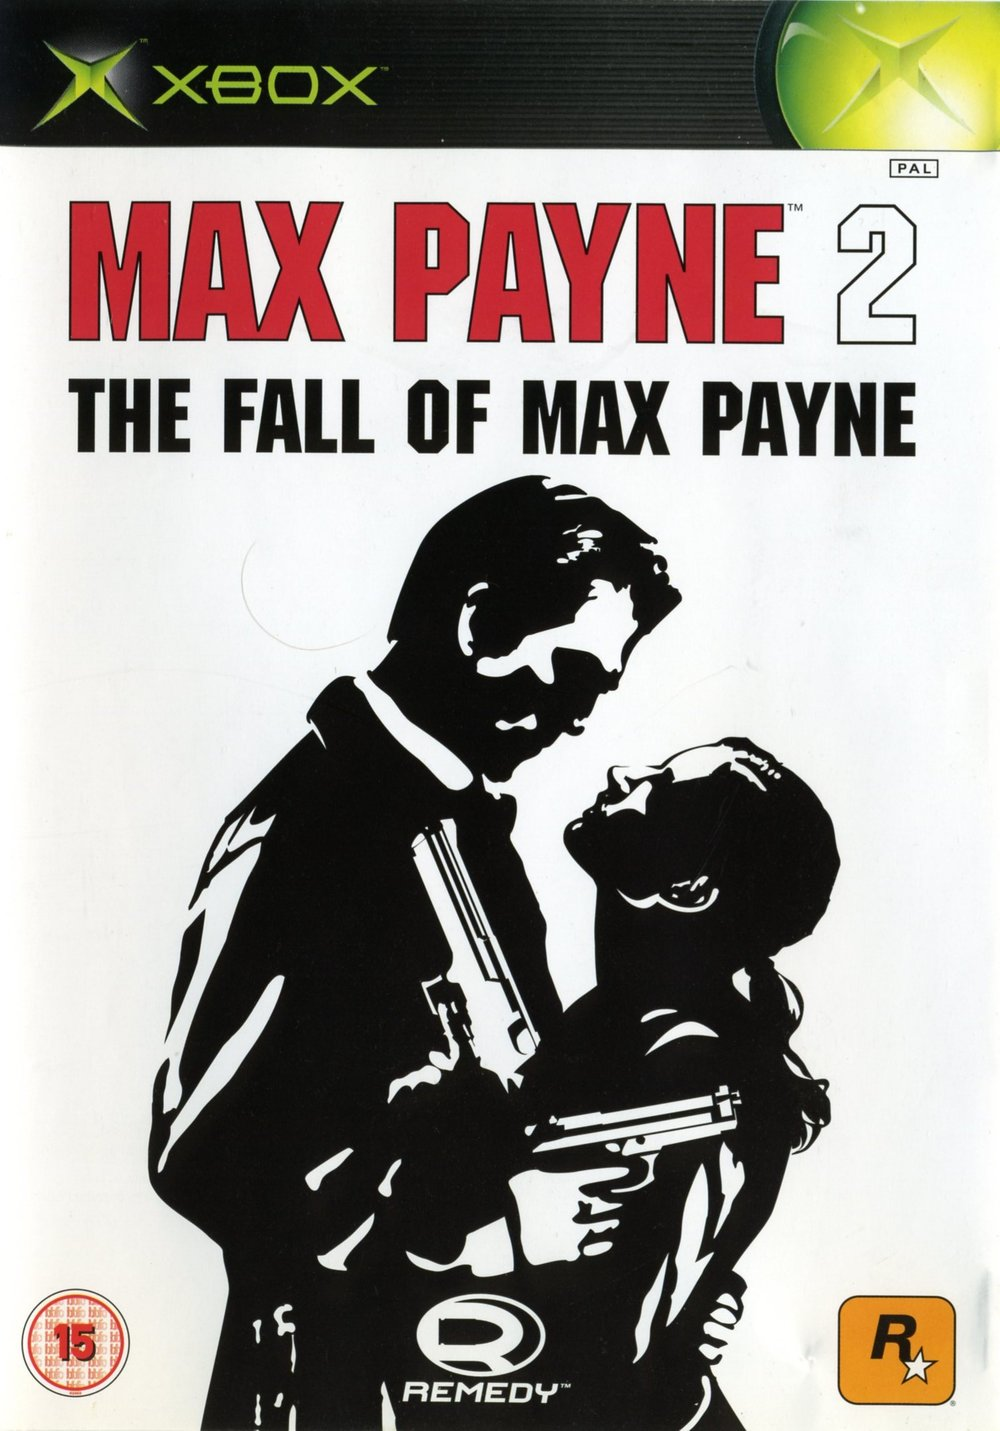 Max Payne 2: The Fall of Max Payne [Completo] - XBX